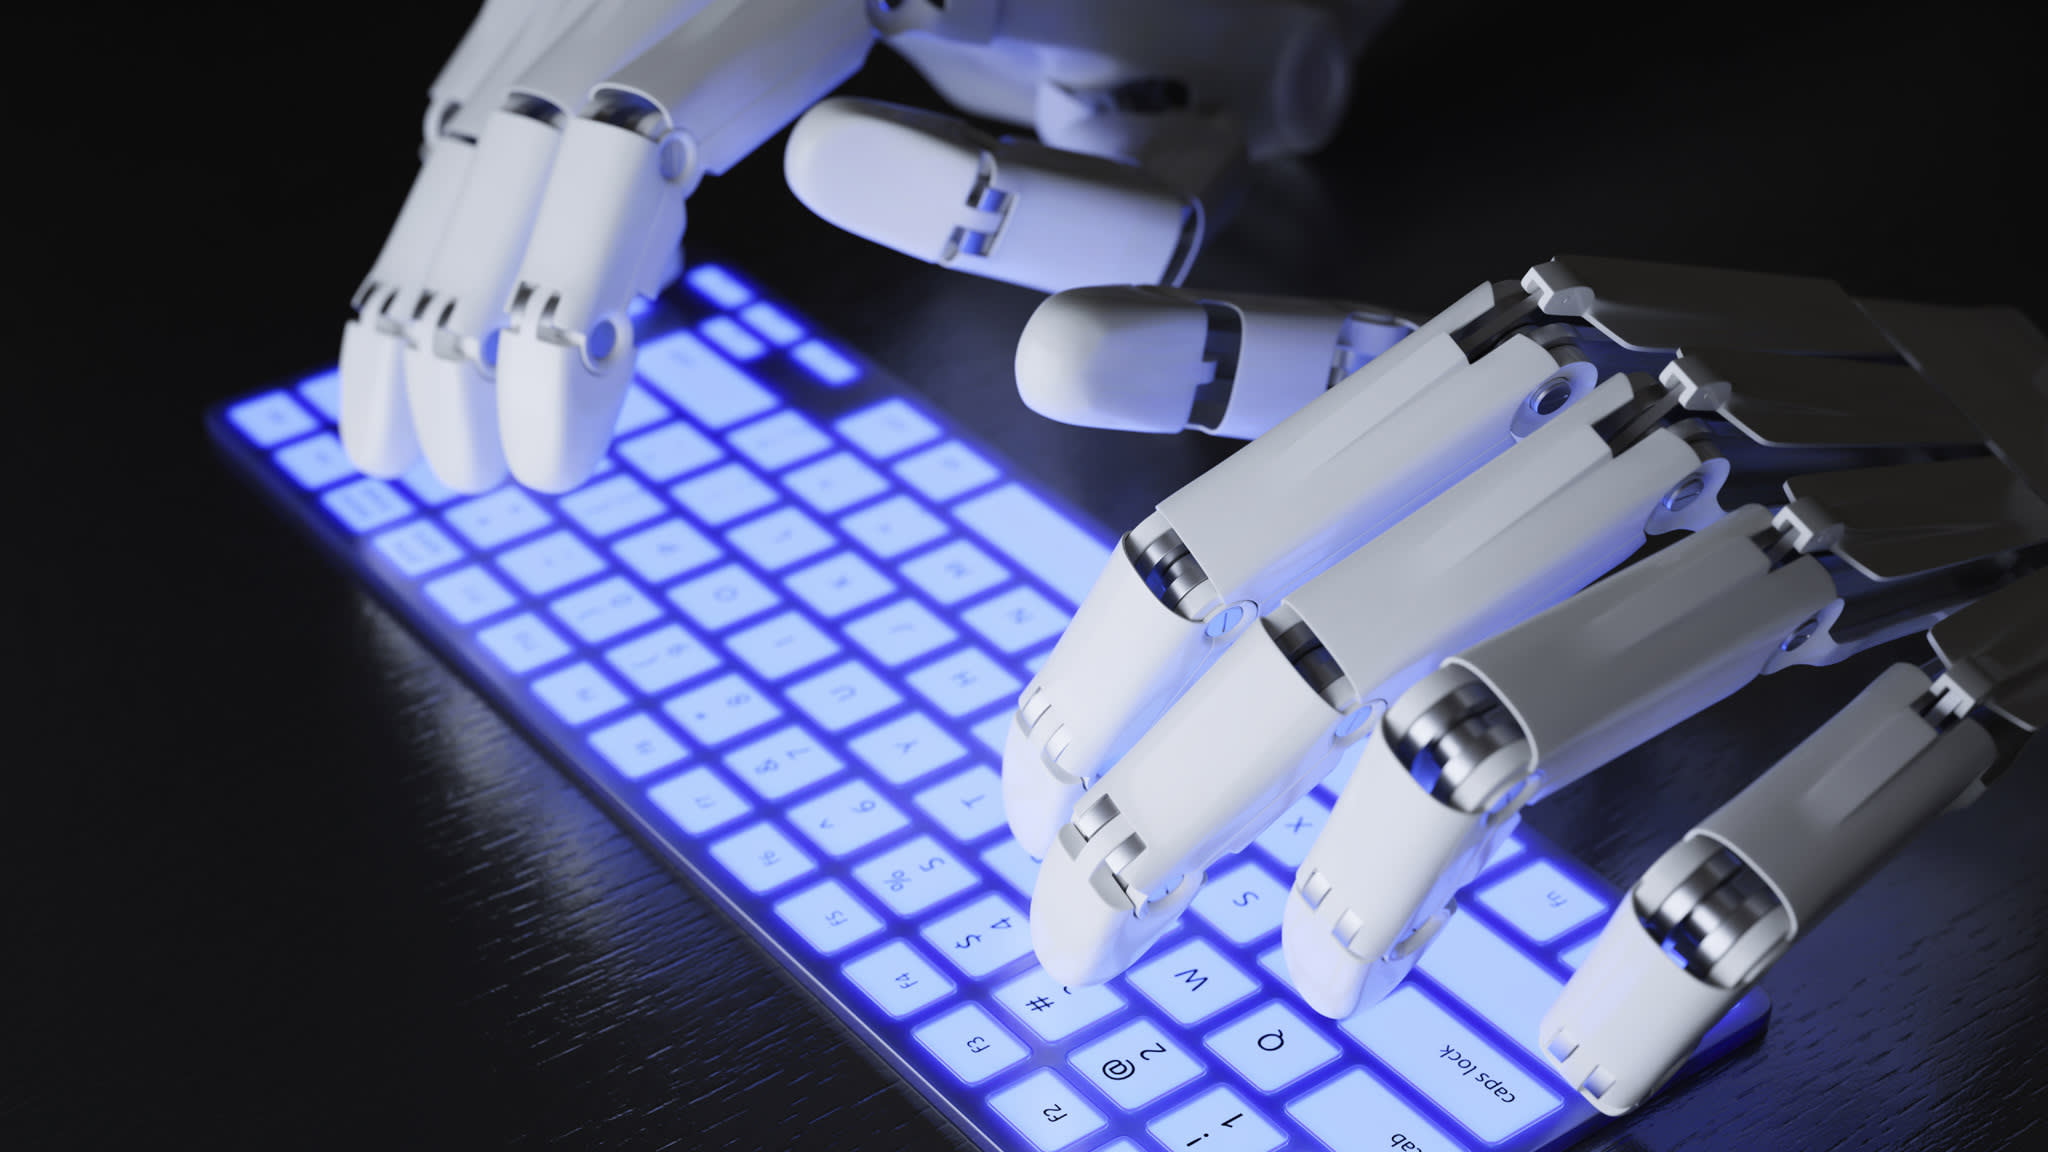 AI and robots threaten to unleash mass unemployment, scientists warn | Financial Times